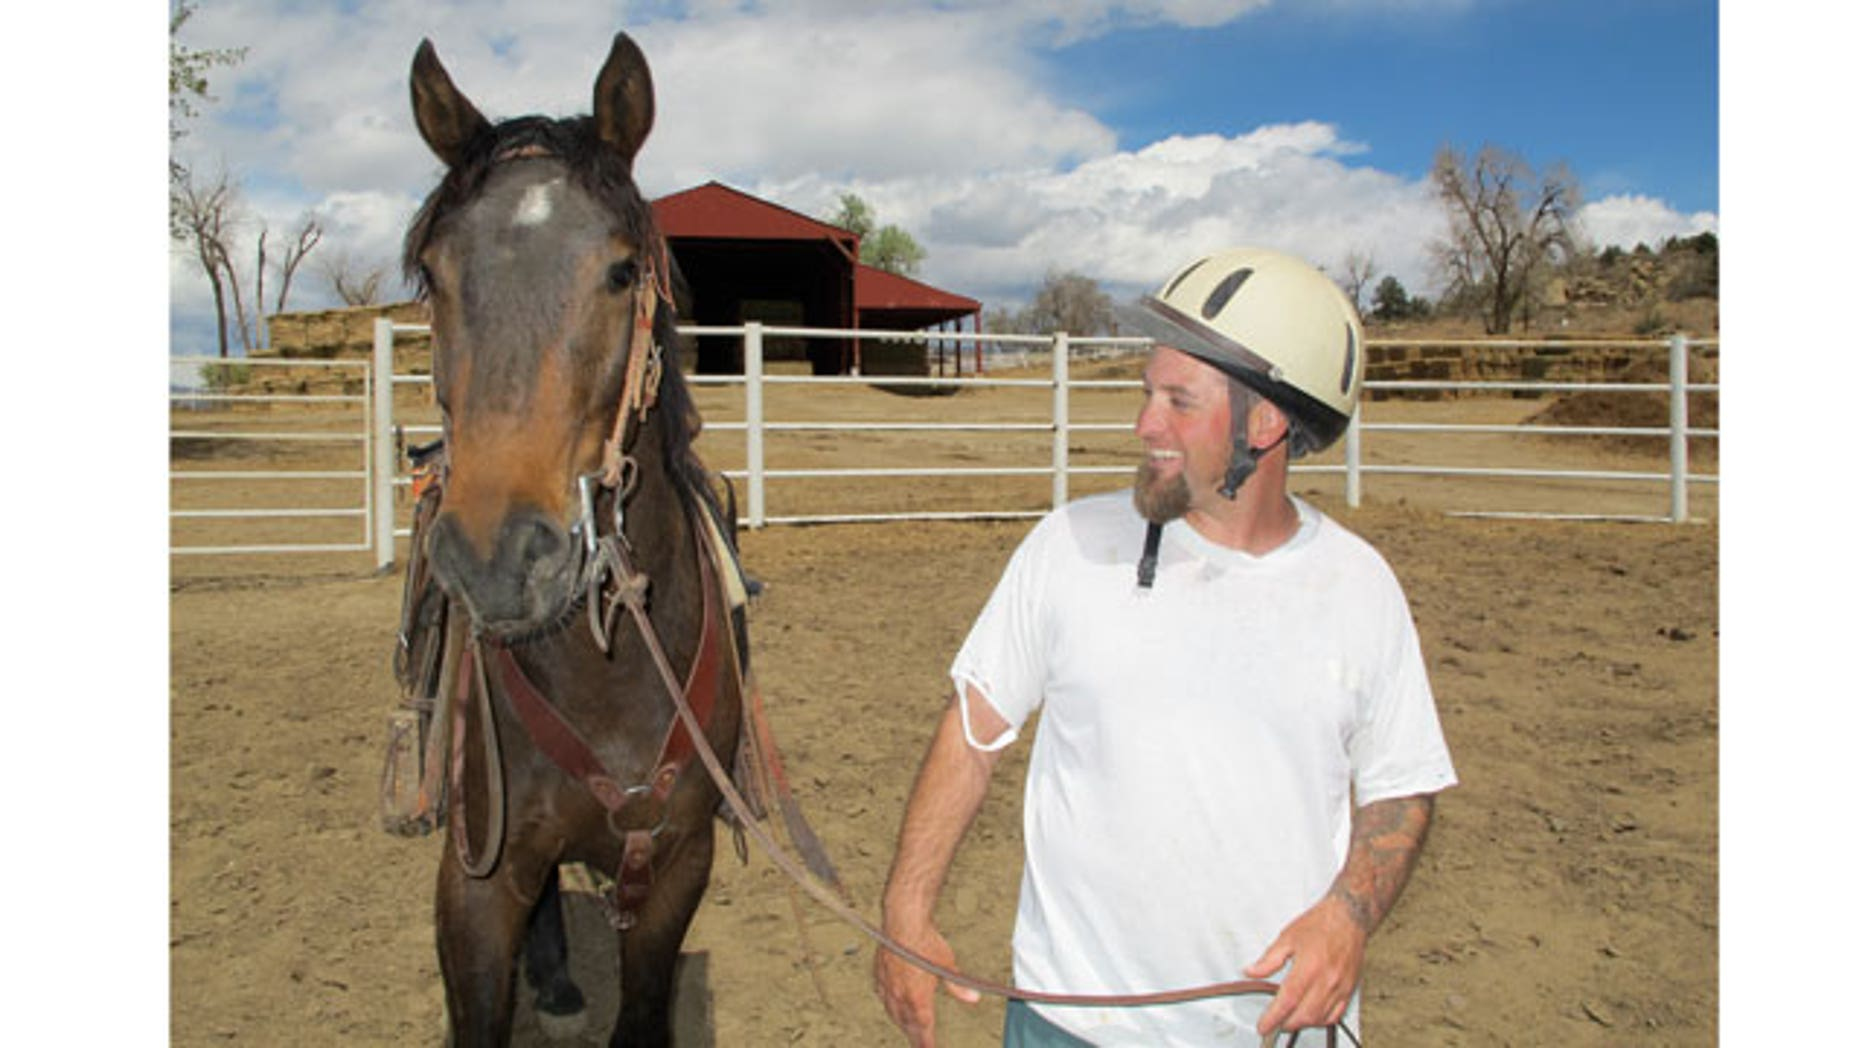 James Hershey, Prison Inmate and Horse Trainer